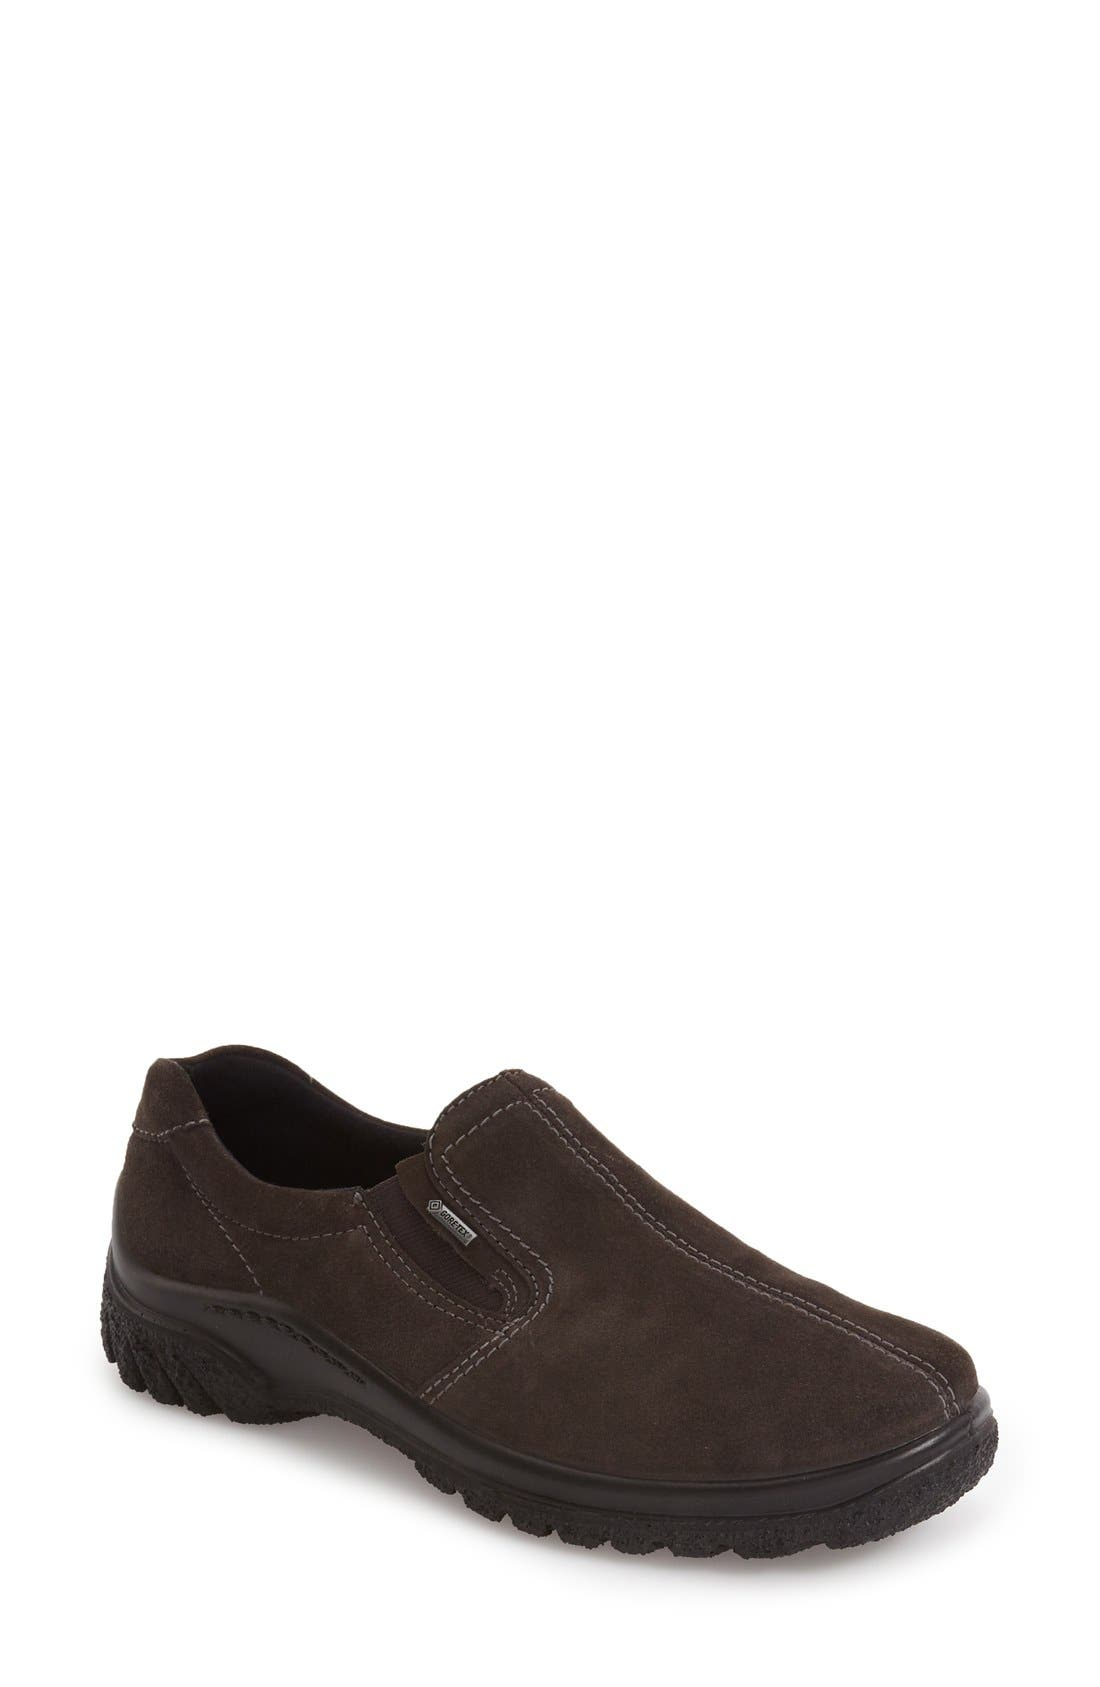 Parson Waterproof Gore-Tex<sup>®</sup> Slip-On Sneaker,                         Main,                         color, LAVA SUEDE